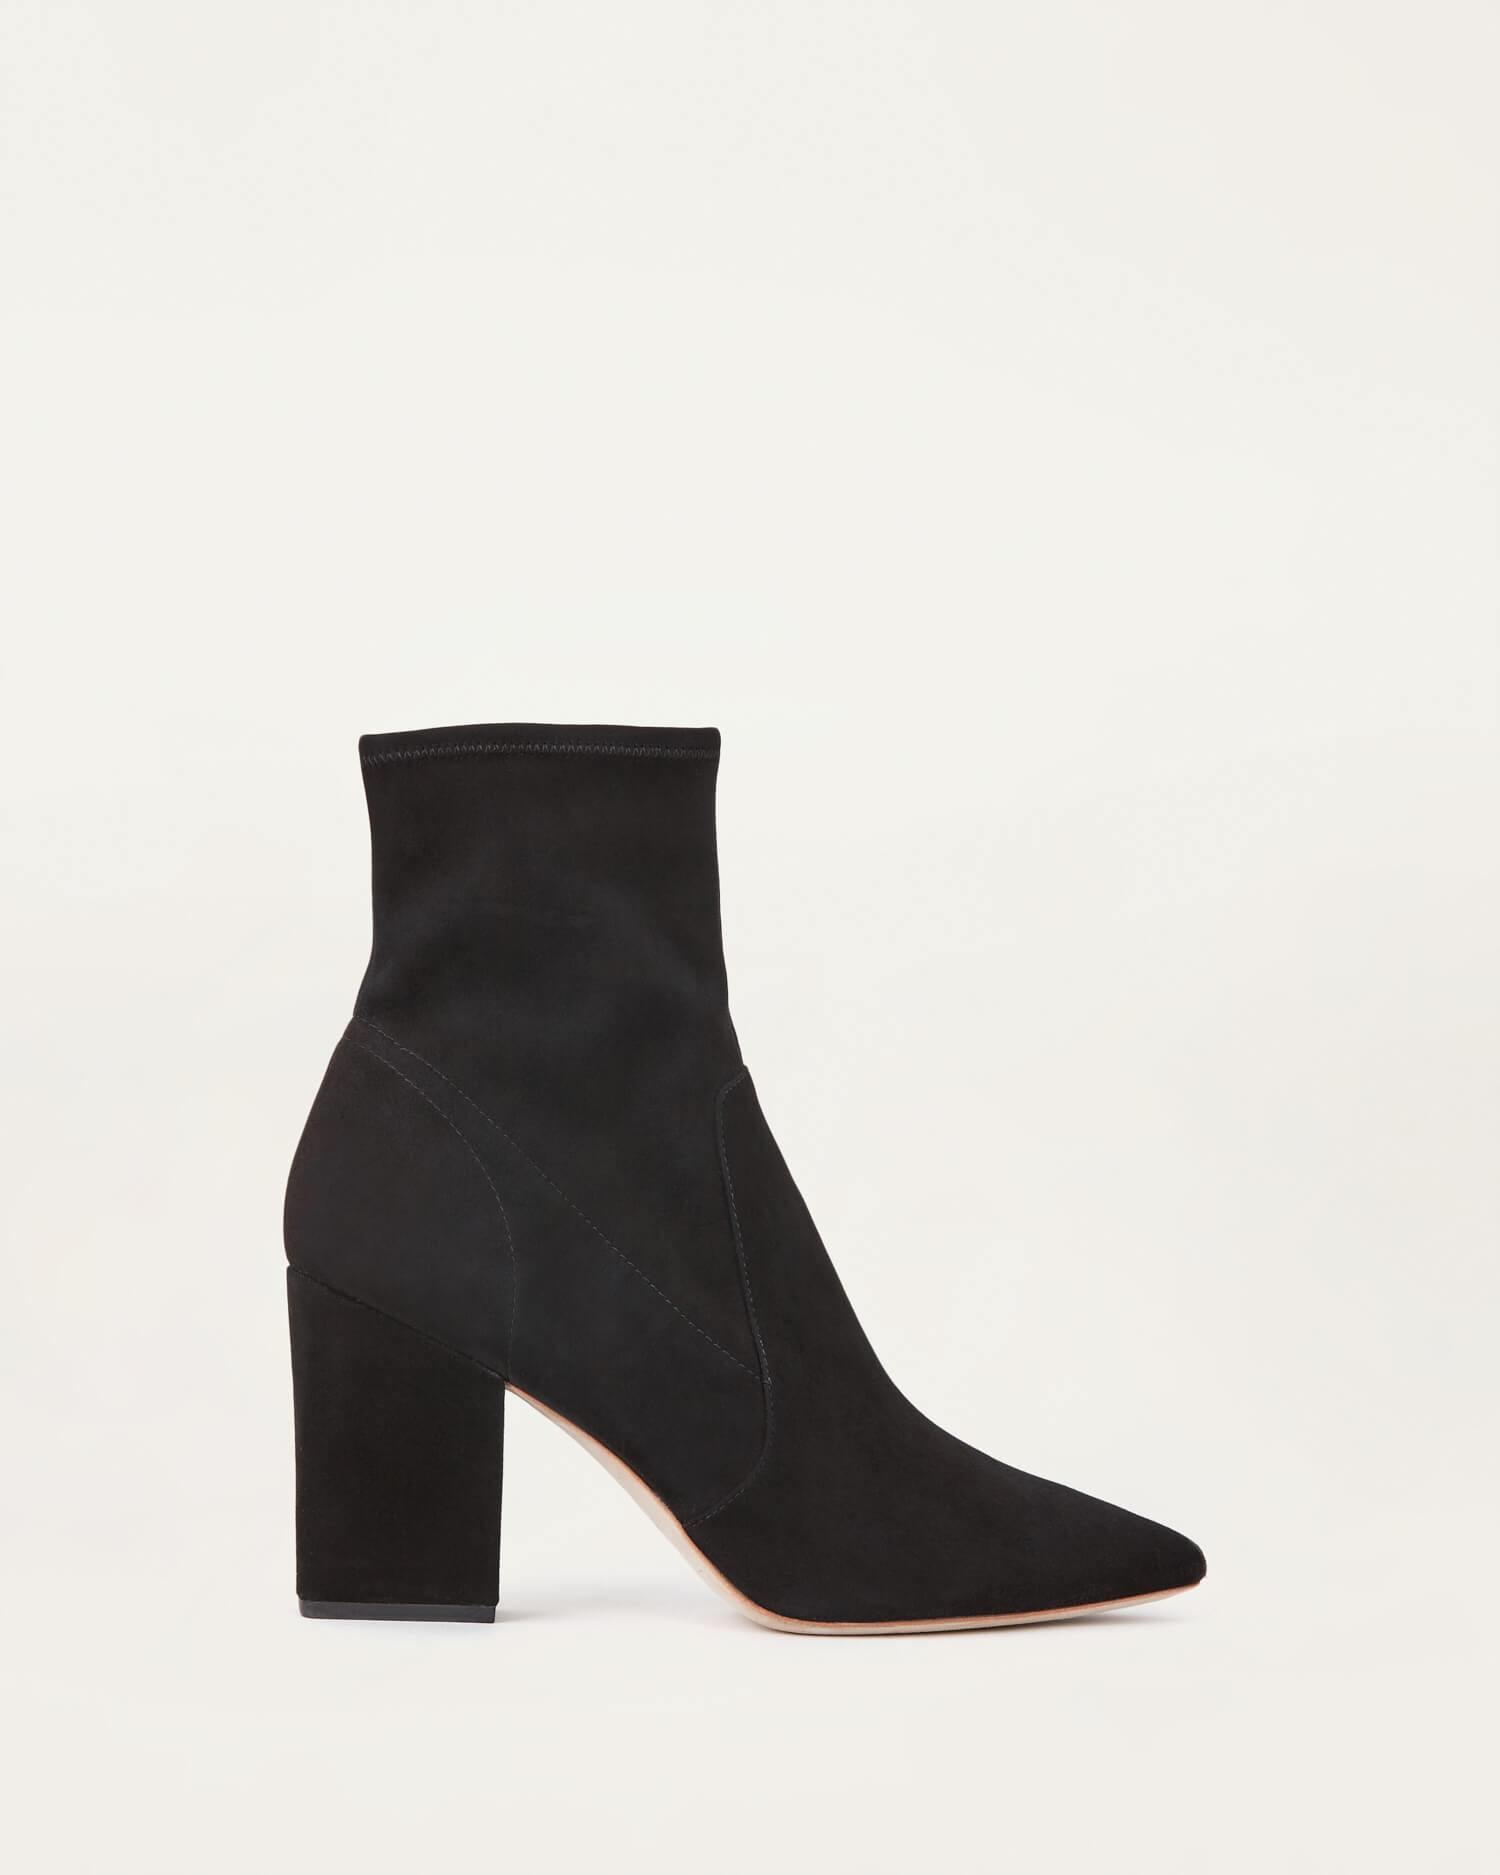 Color: Black Suede; Color: Black Suede